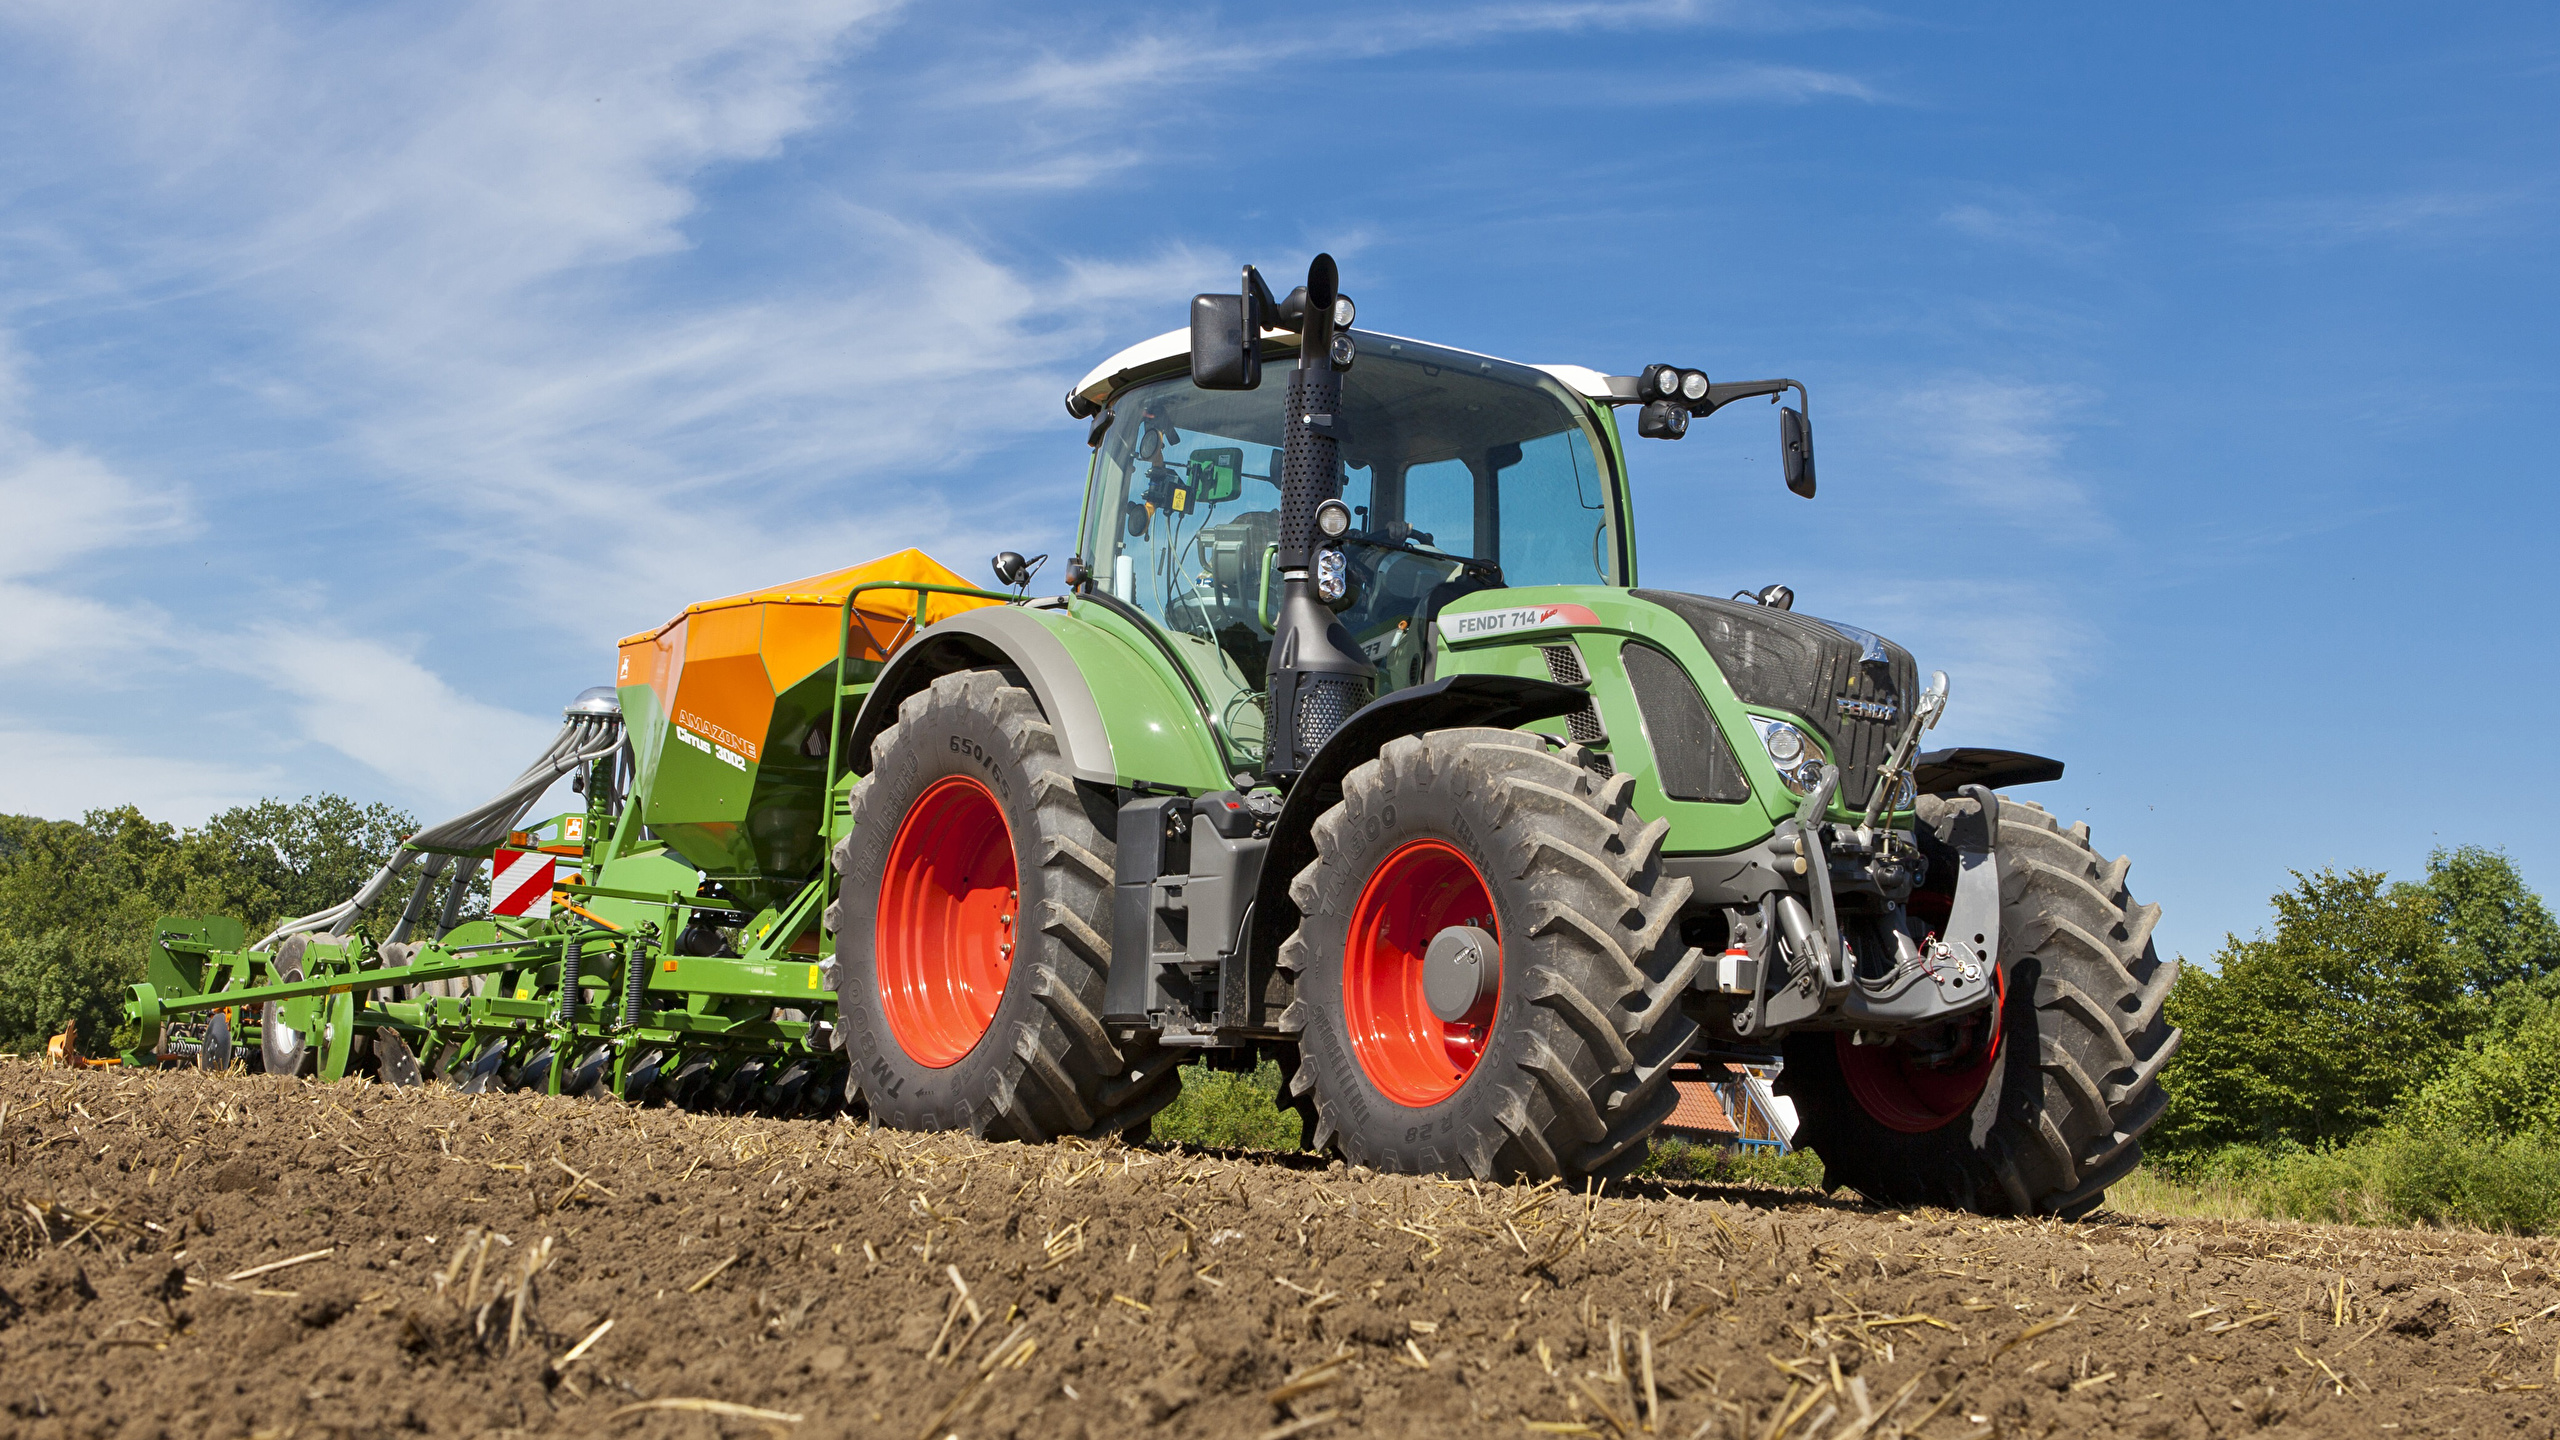 Image Agricultural machinery Tractor 2011 17 Fendt 714 2560x1440 2560x1440